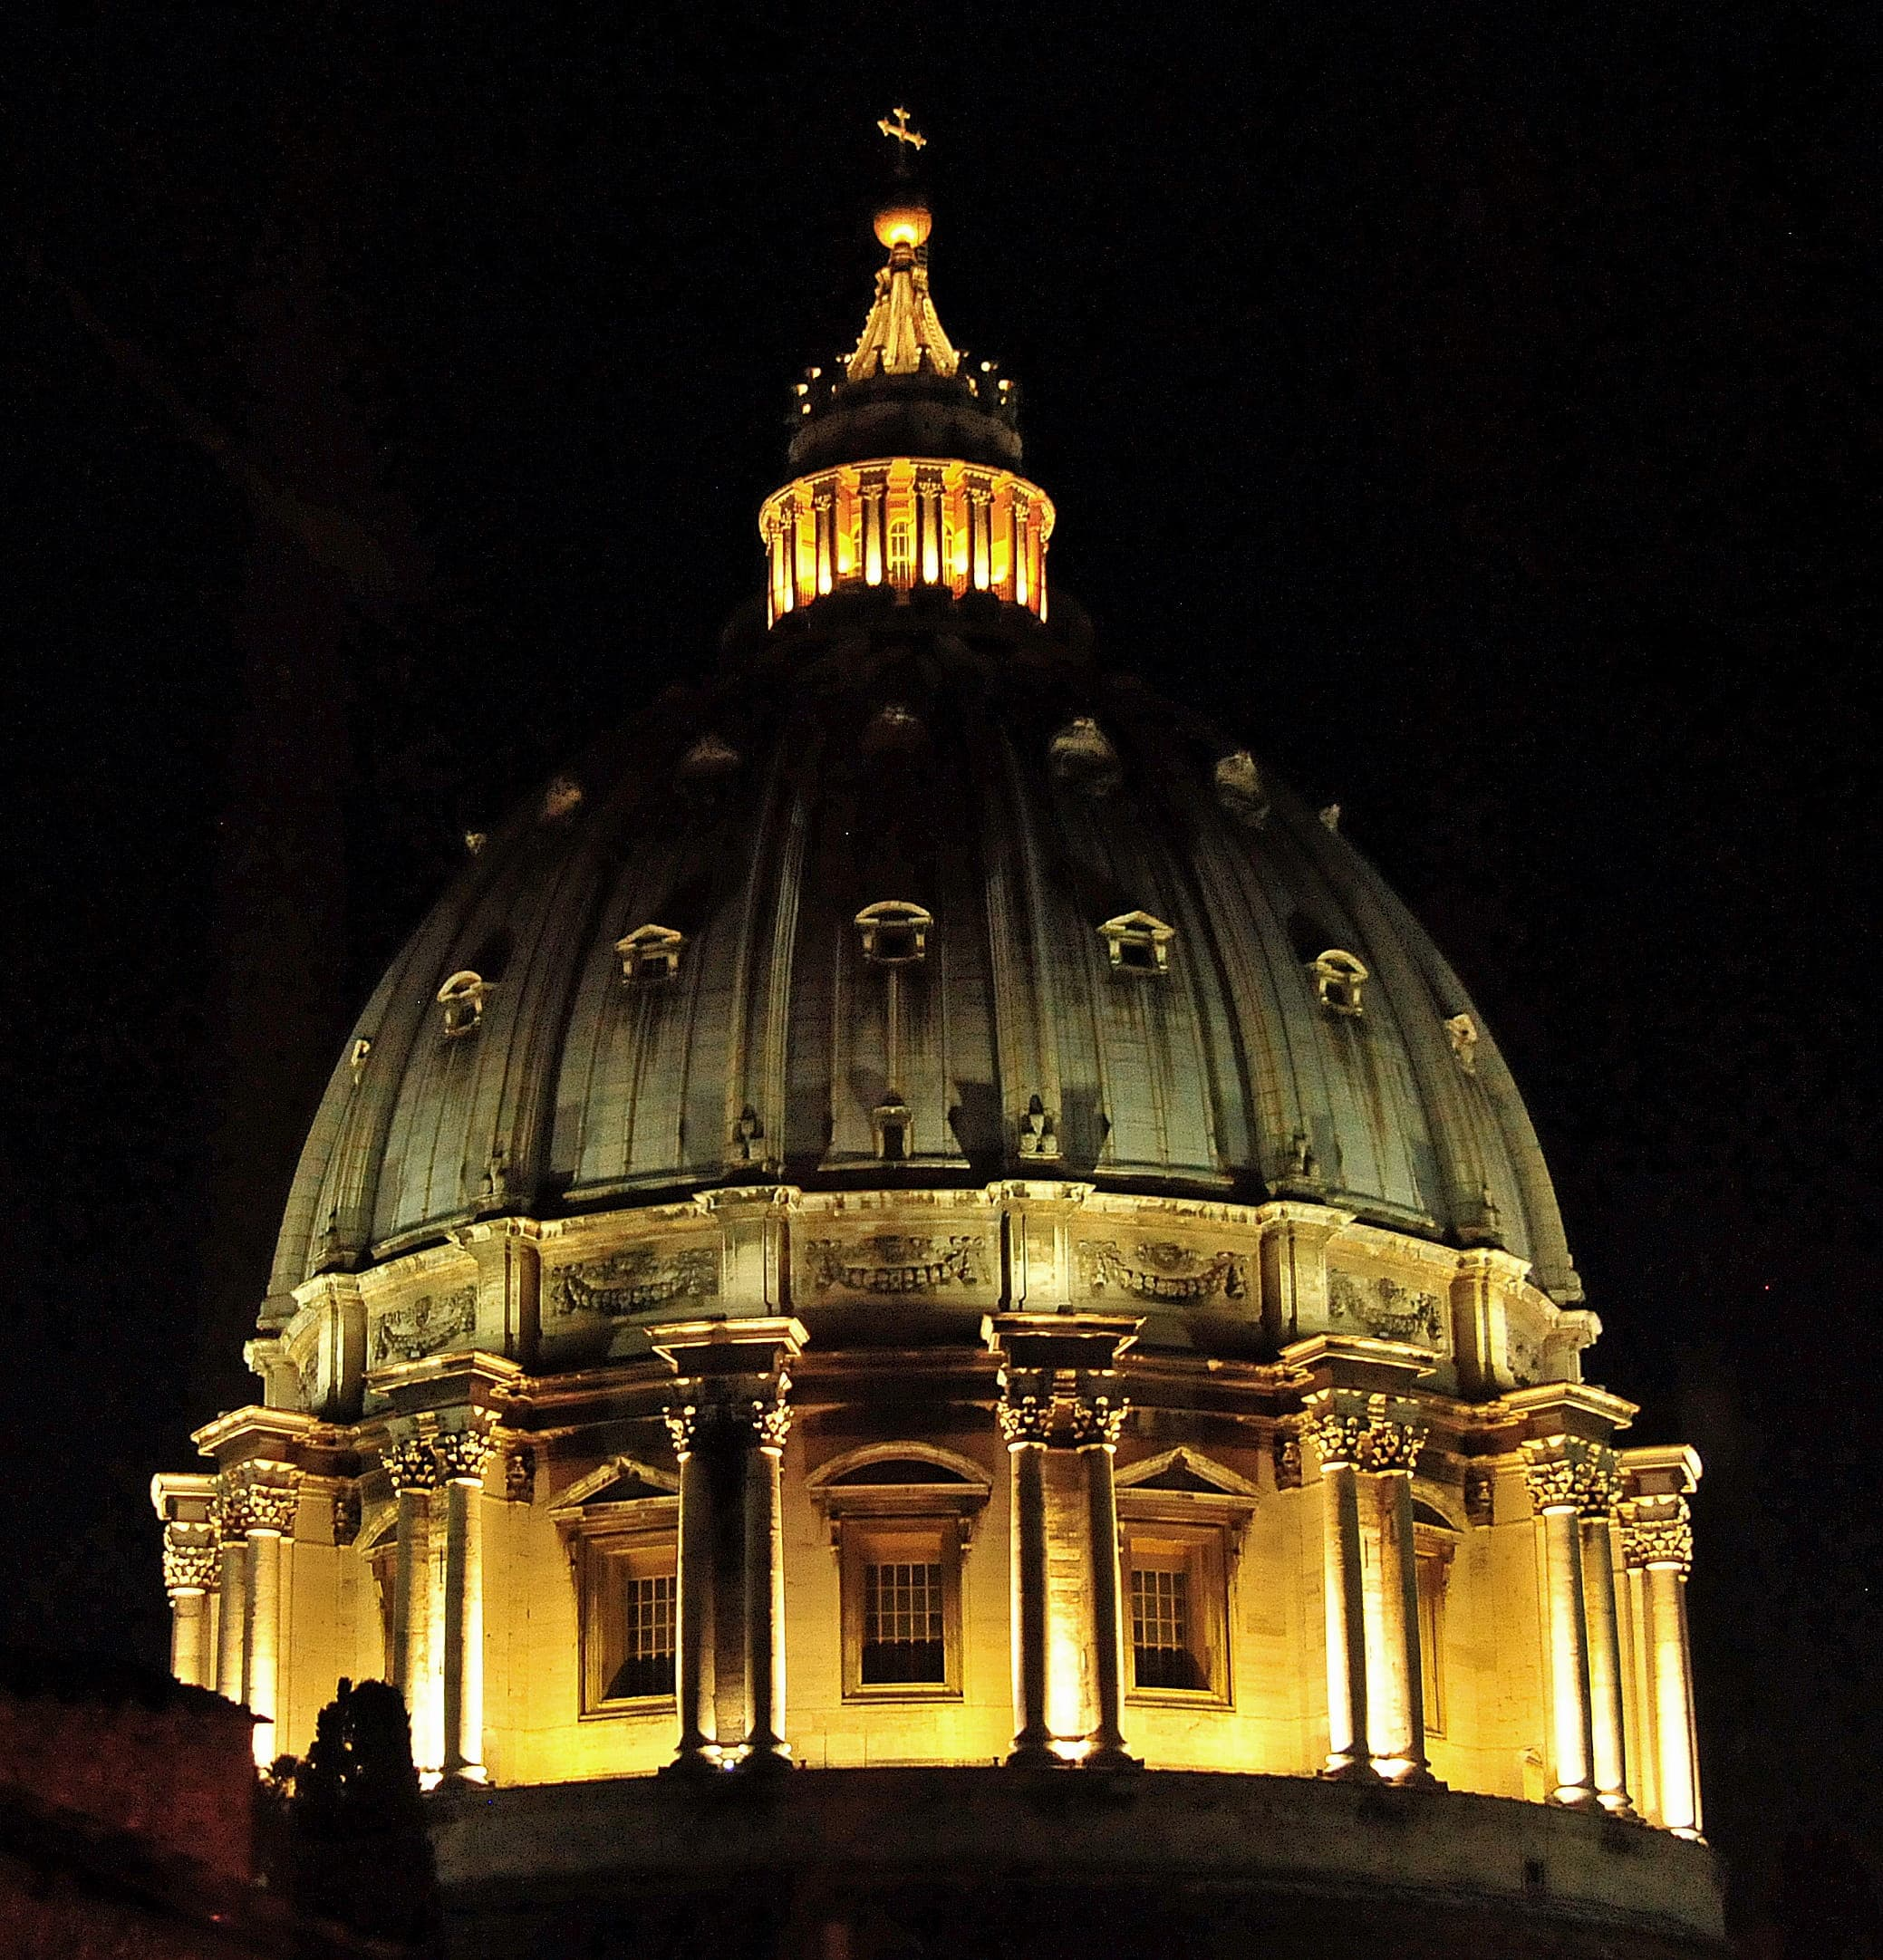 St. Peter's Dome at Night